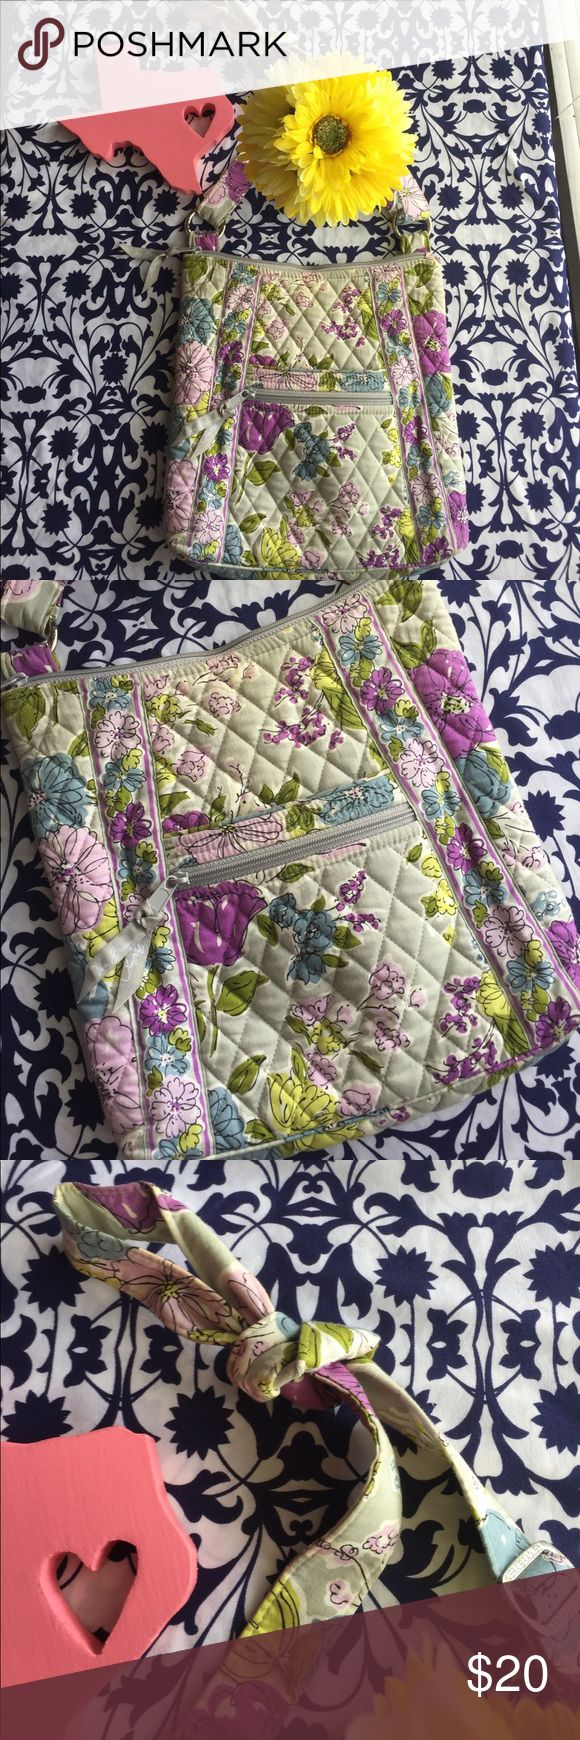 🌸☀️Vera Bradley Cross Body Bag☀️🌸 EUC🌸Will ship asap🌸No exchange or returns🌸All sales are final🌸All offers are welcomed🌸 Vera Bradley Bags Crossbody Bags